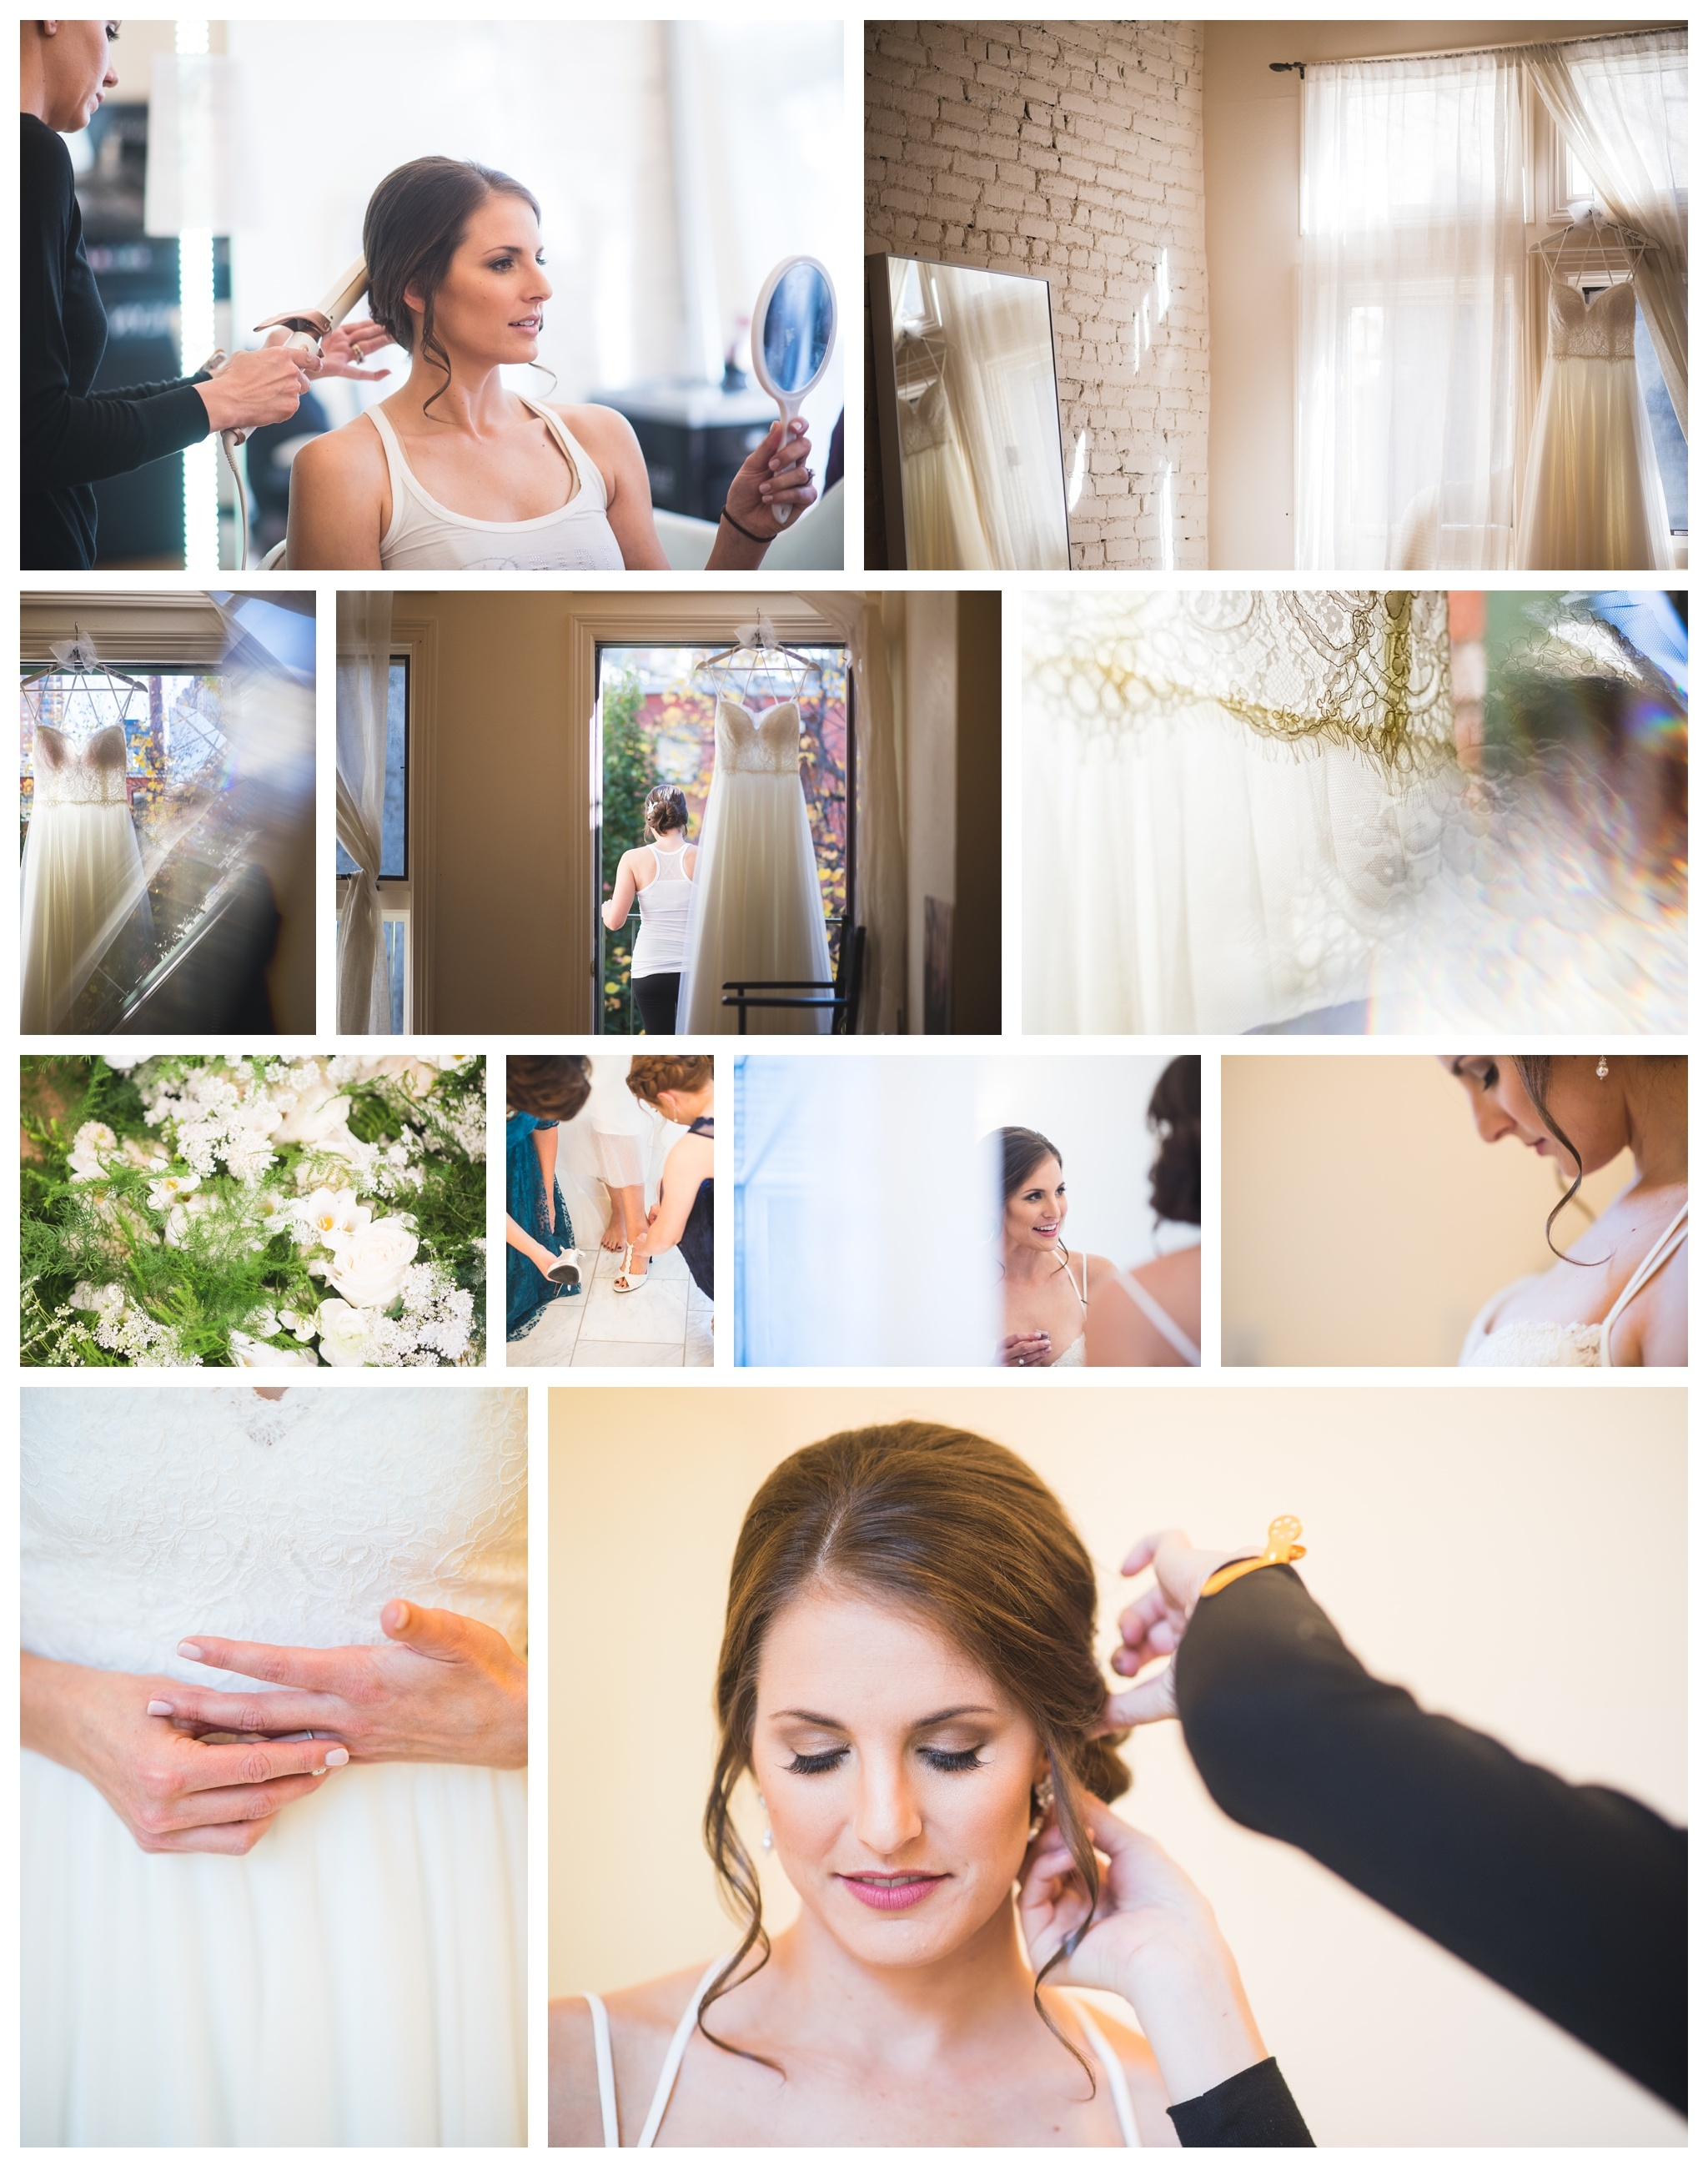 moss-denver-wedding-photography